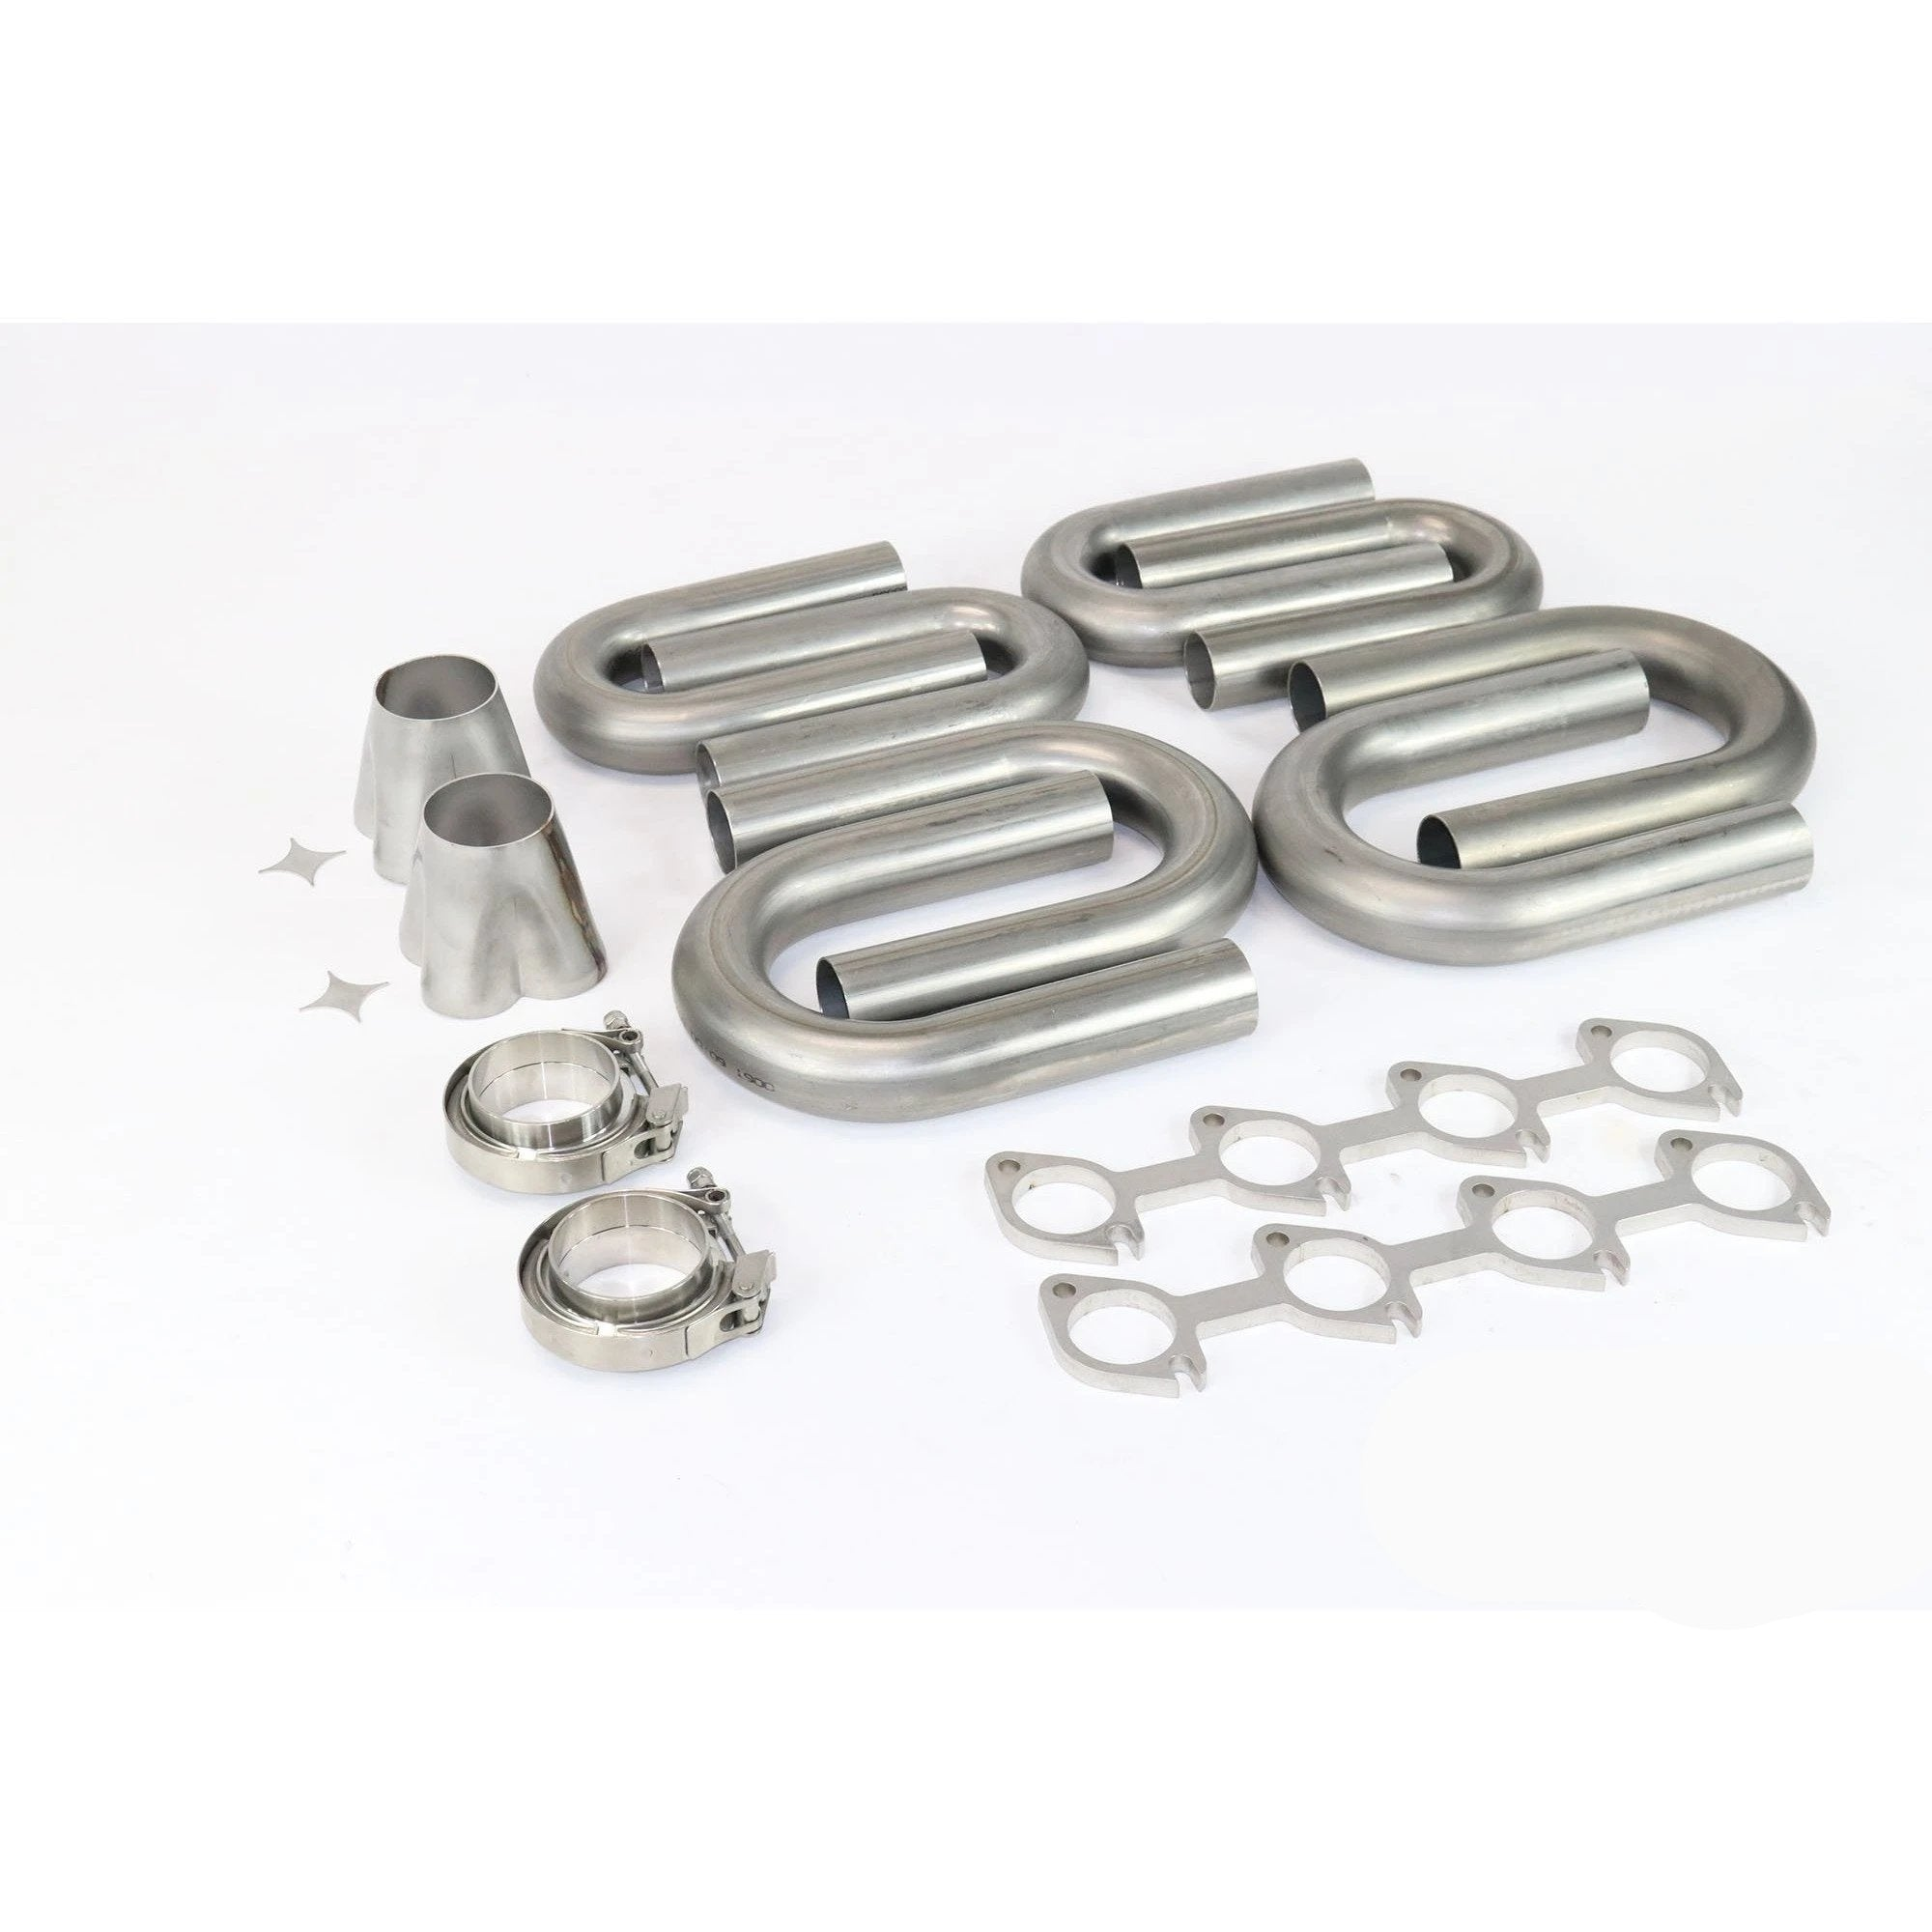 Ford Modular 2V 4.6 304 Stainless Turbo Header Build Kit-Kit-Motion Raceworks